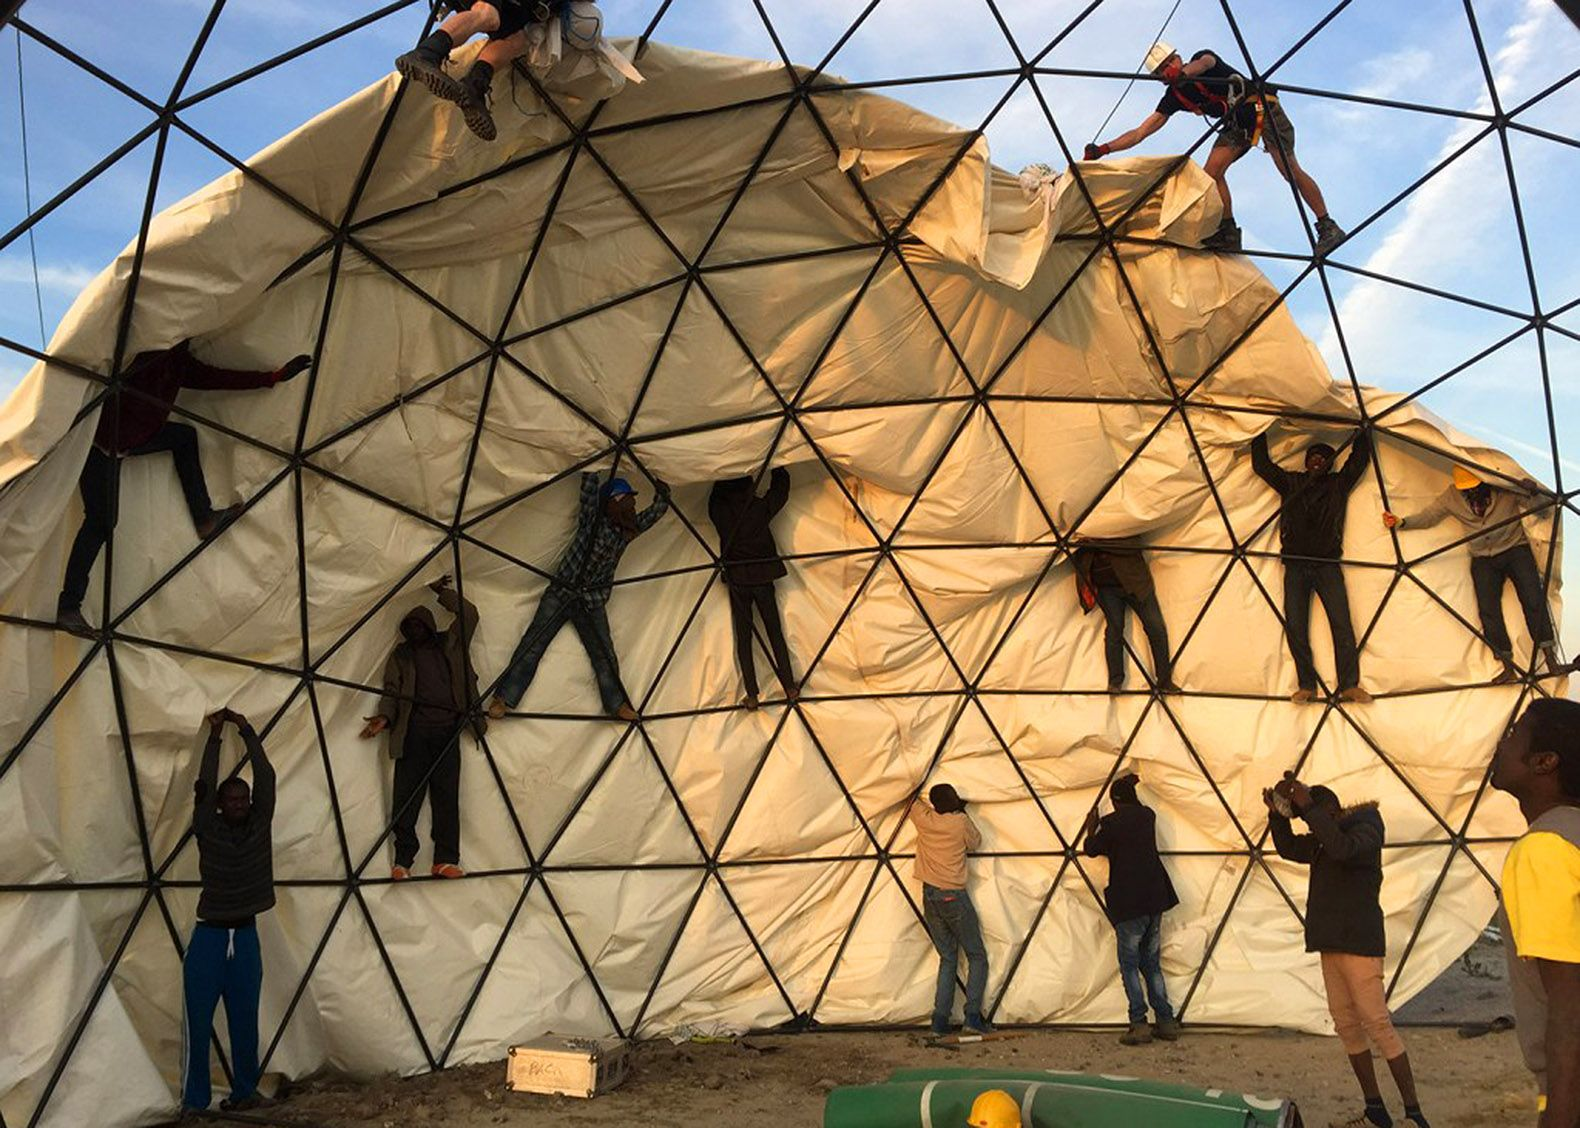 Dome shaped Good Chance Theatre allows Calais refugees